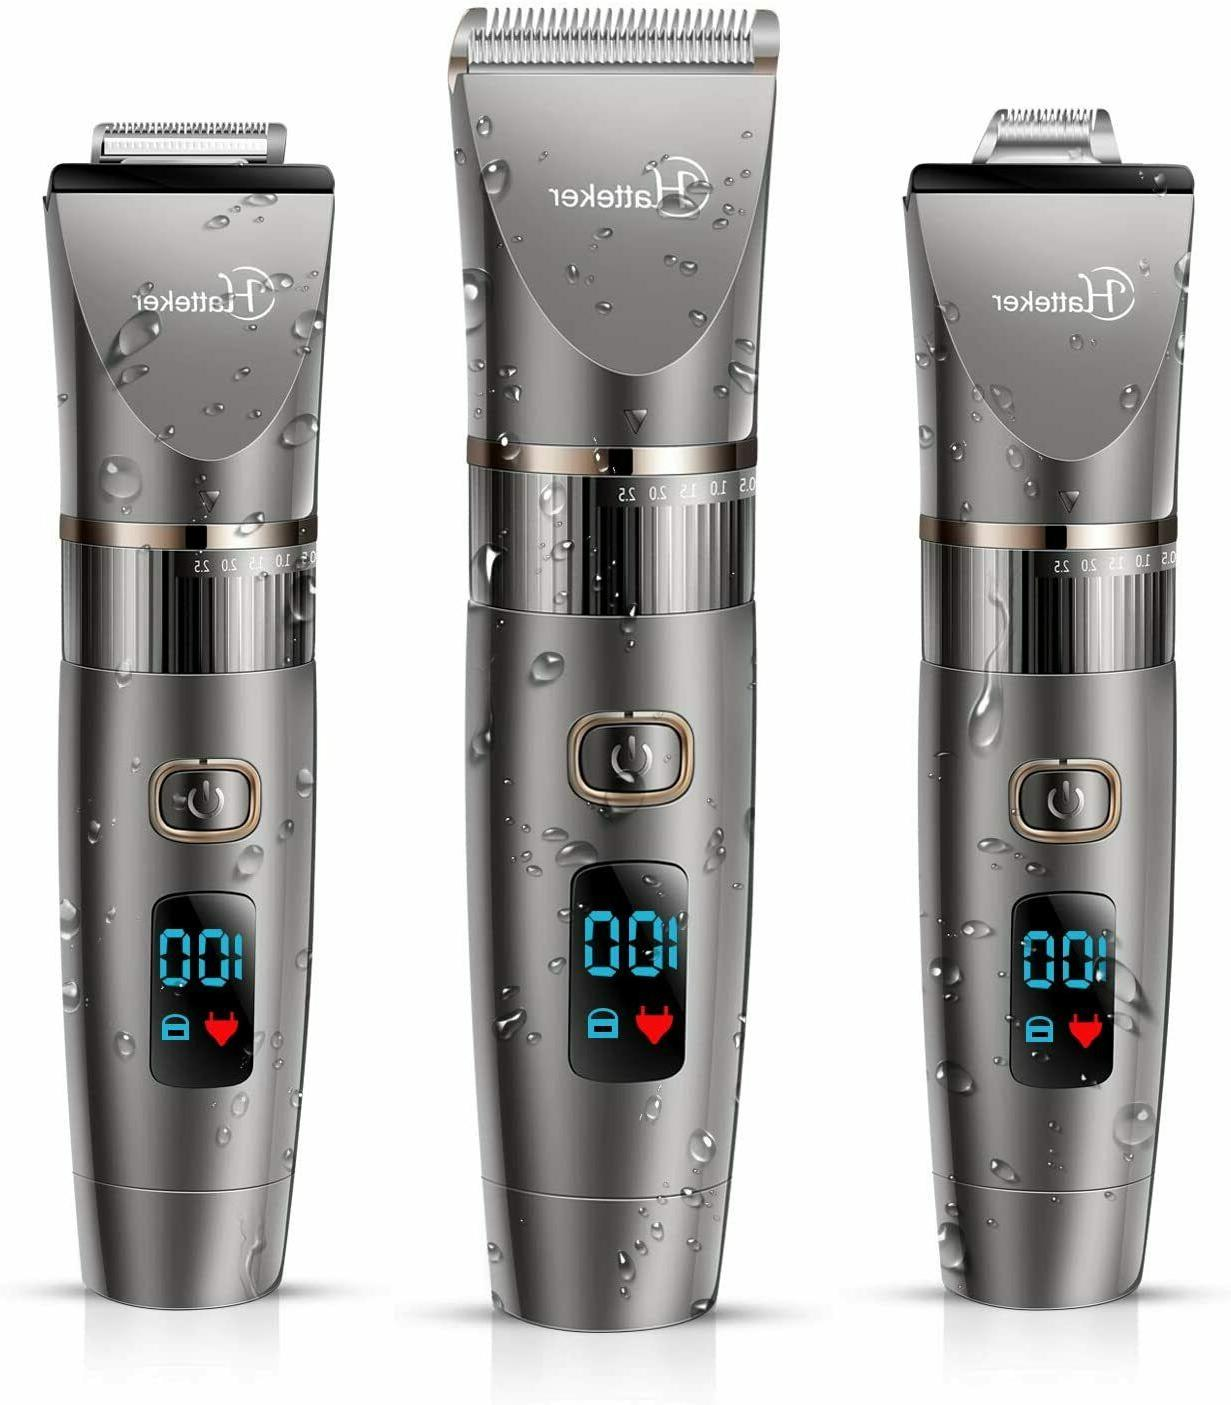 Mens & Trimmer Precision Detail 3 1 Grooming